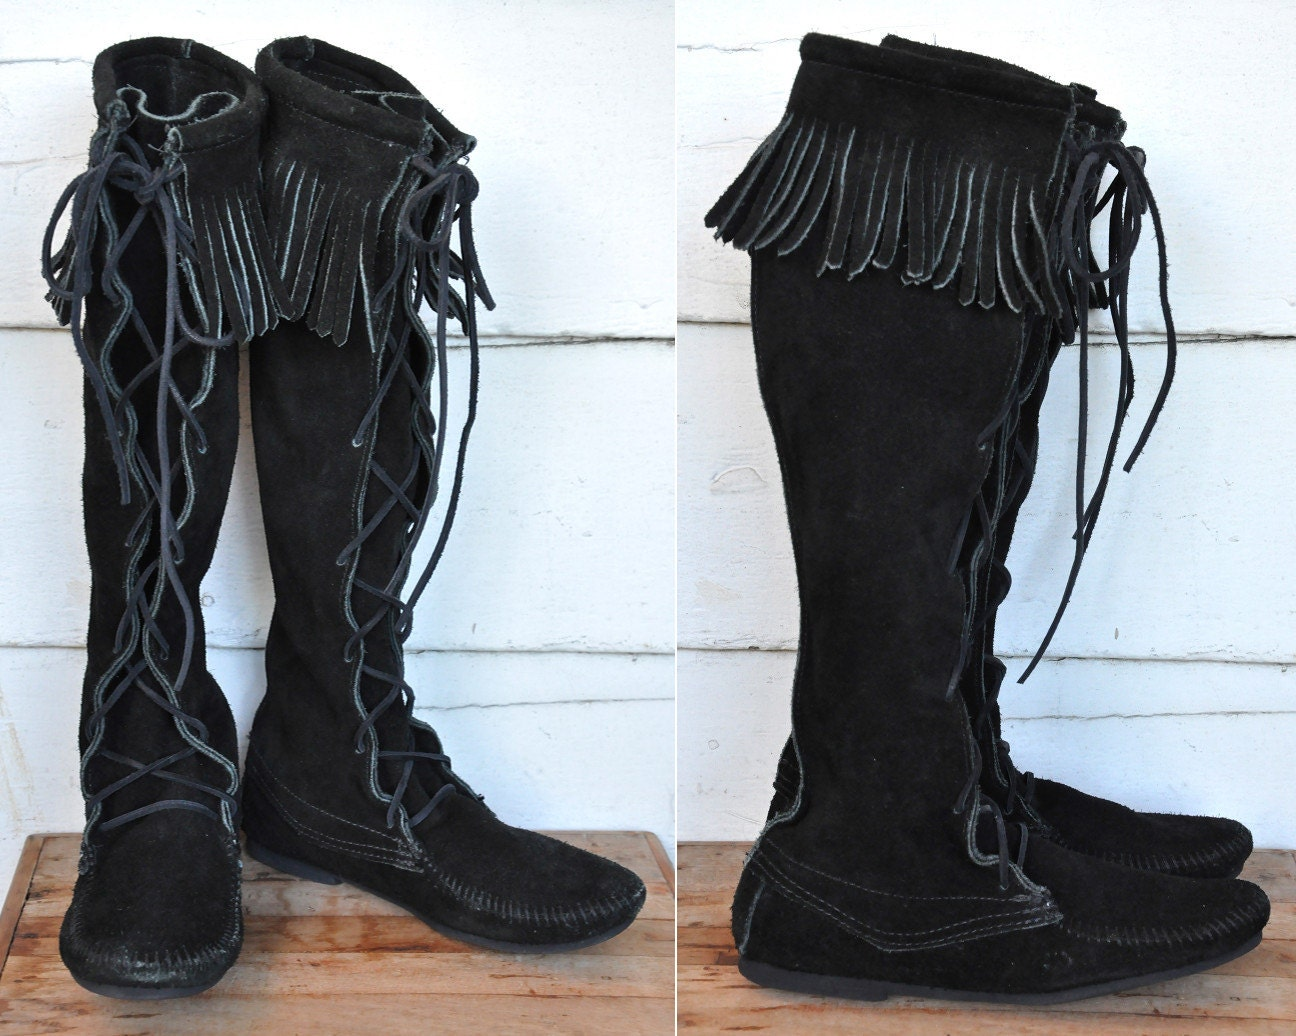 Minnetonka suede leather knee high tall lace up moccasin fringe boots - Like This Item